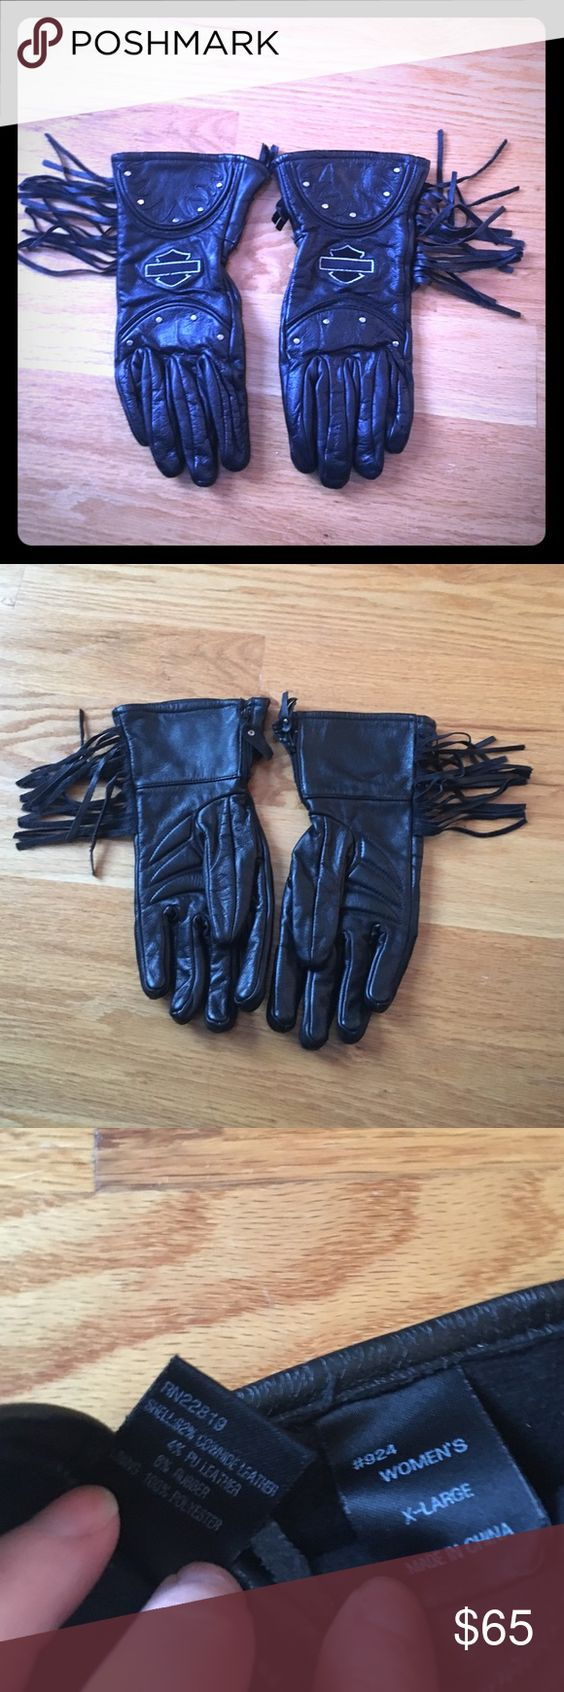 Motorcycle gloves xl - Womens Xl Lined Motorcycle Gloves Super Warm Lined Leather Motorcycle Gloves With Studs And Fringe